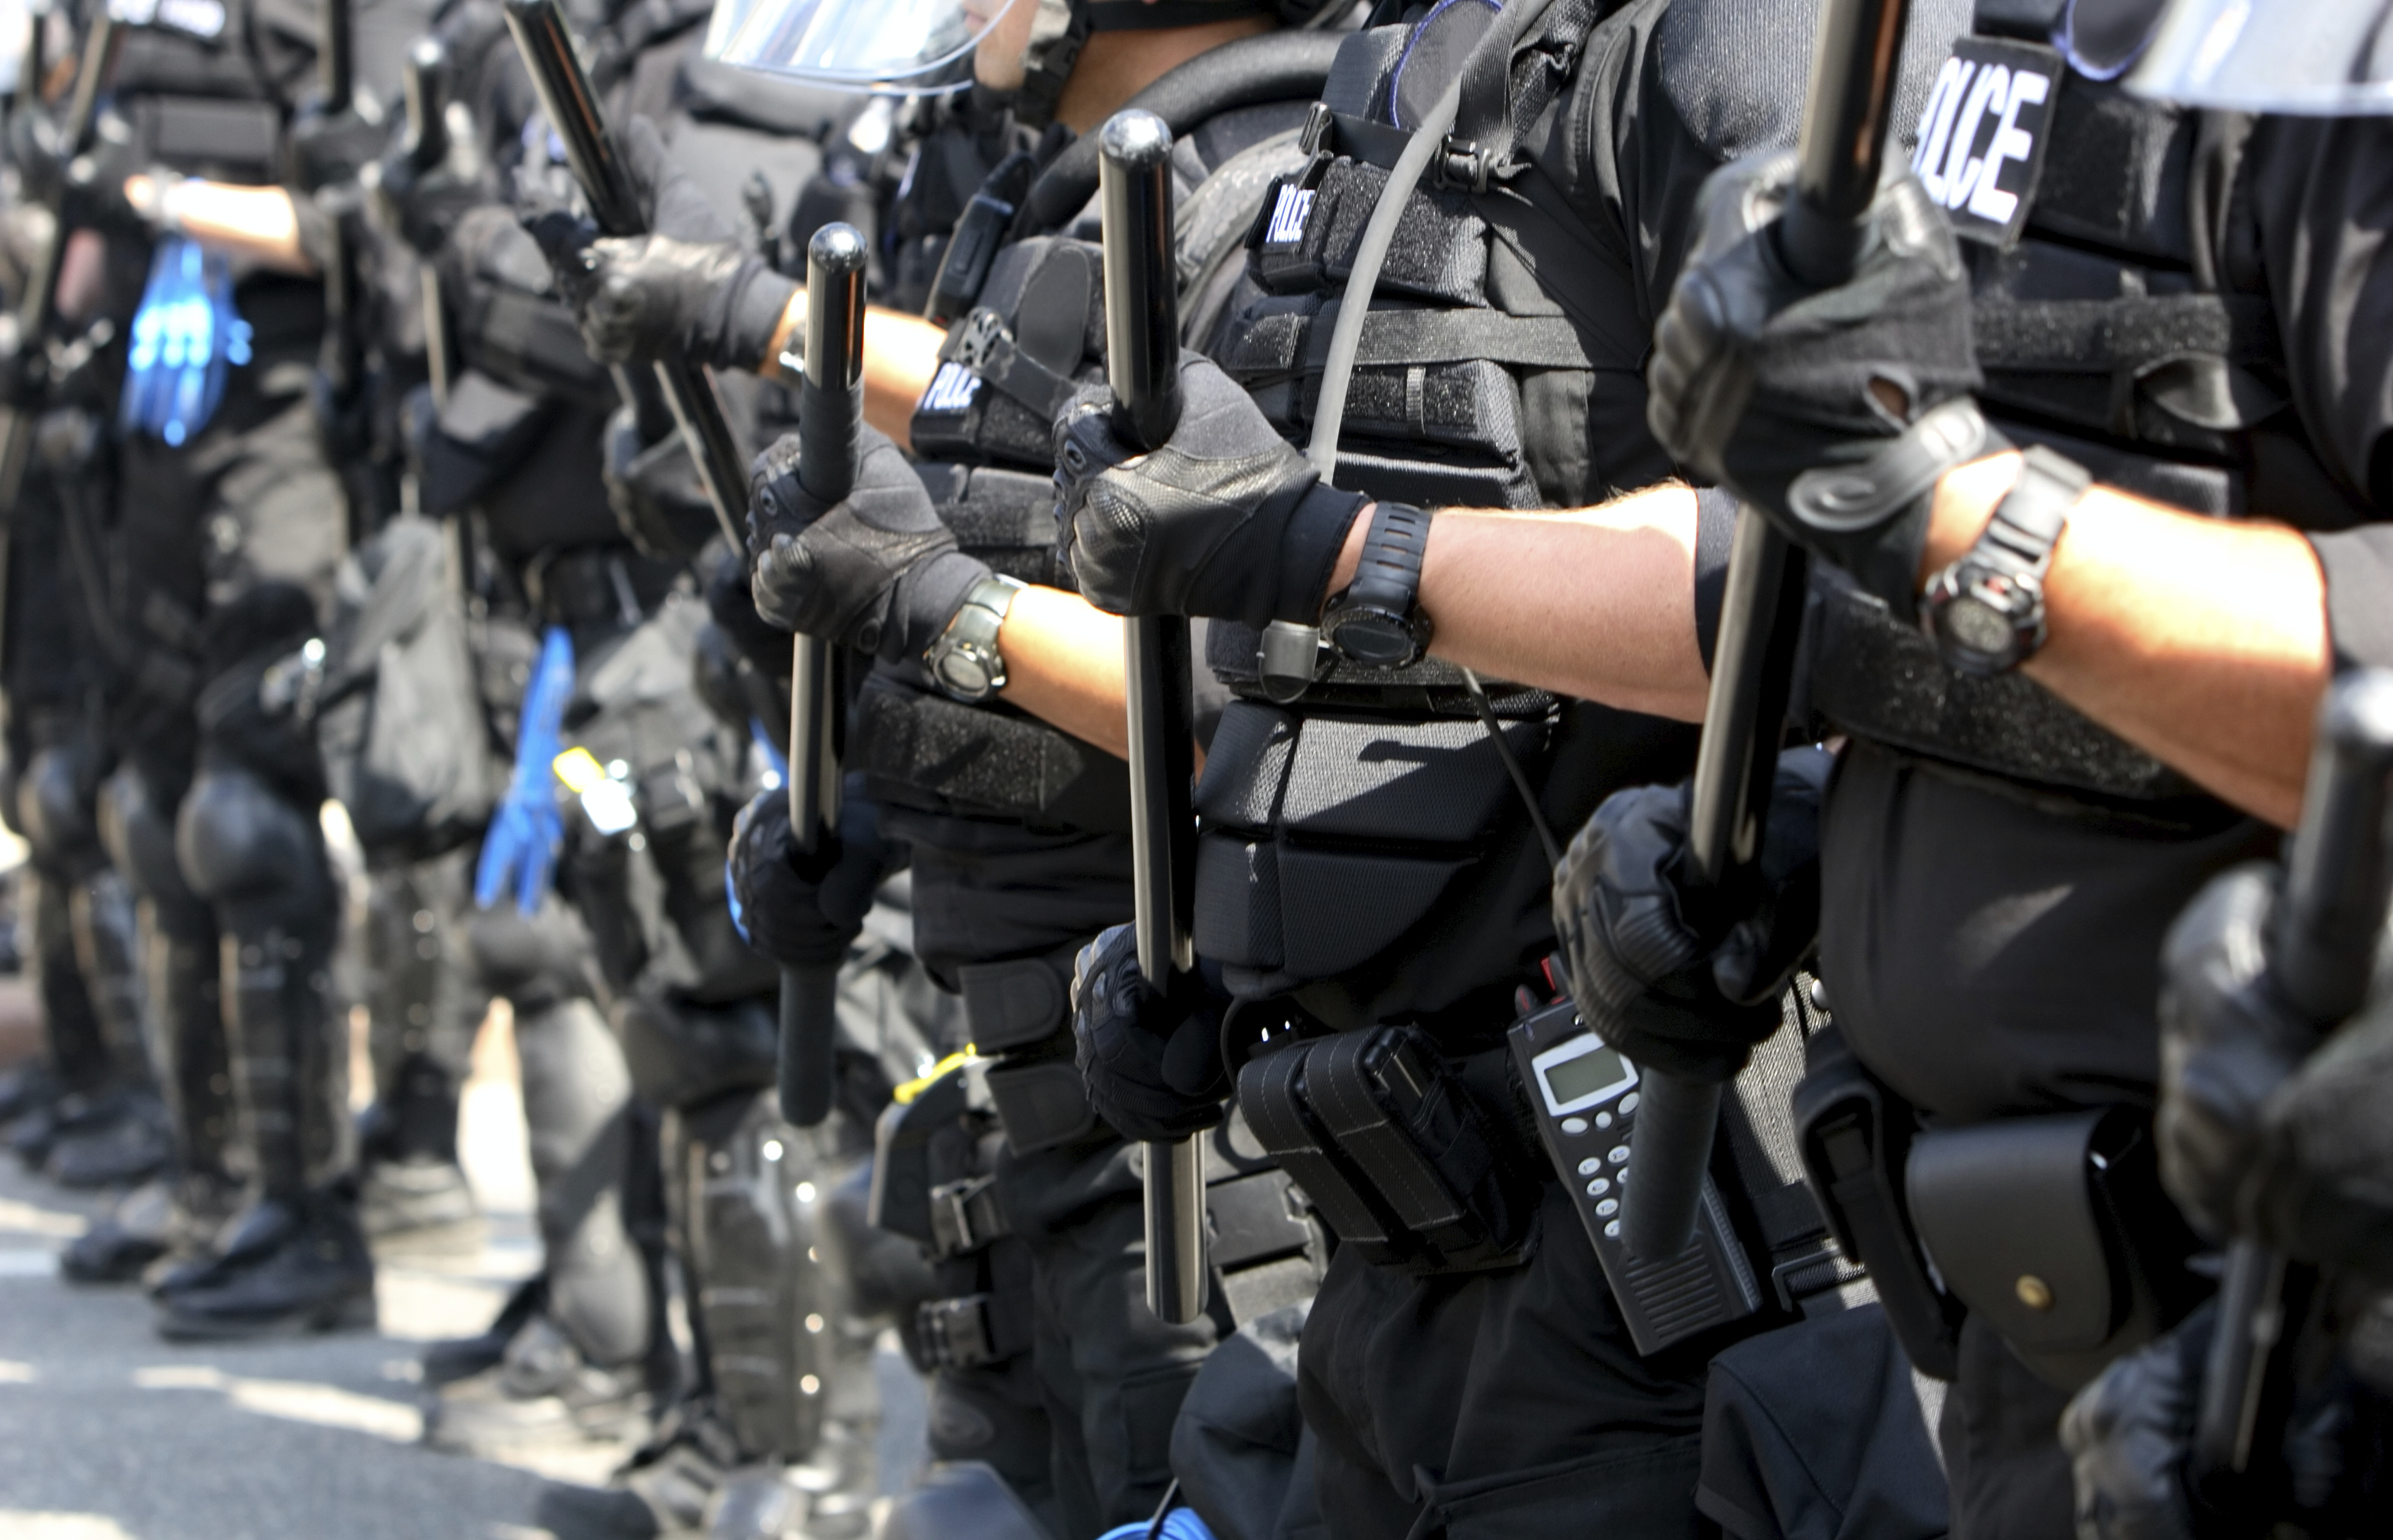 Brown, Black and Blue: The Colors of Police Violence